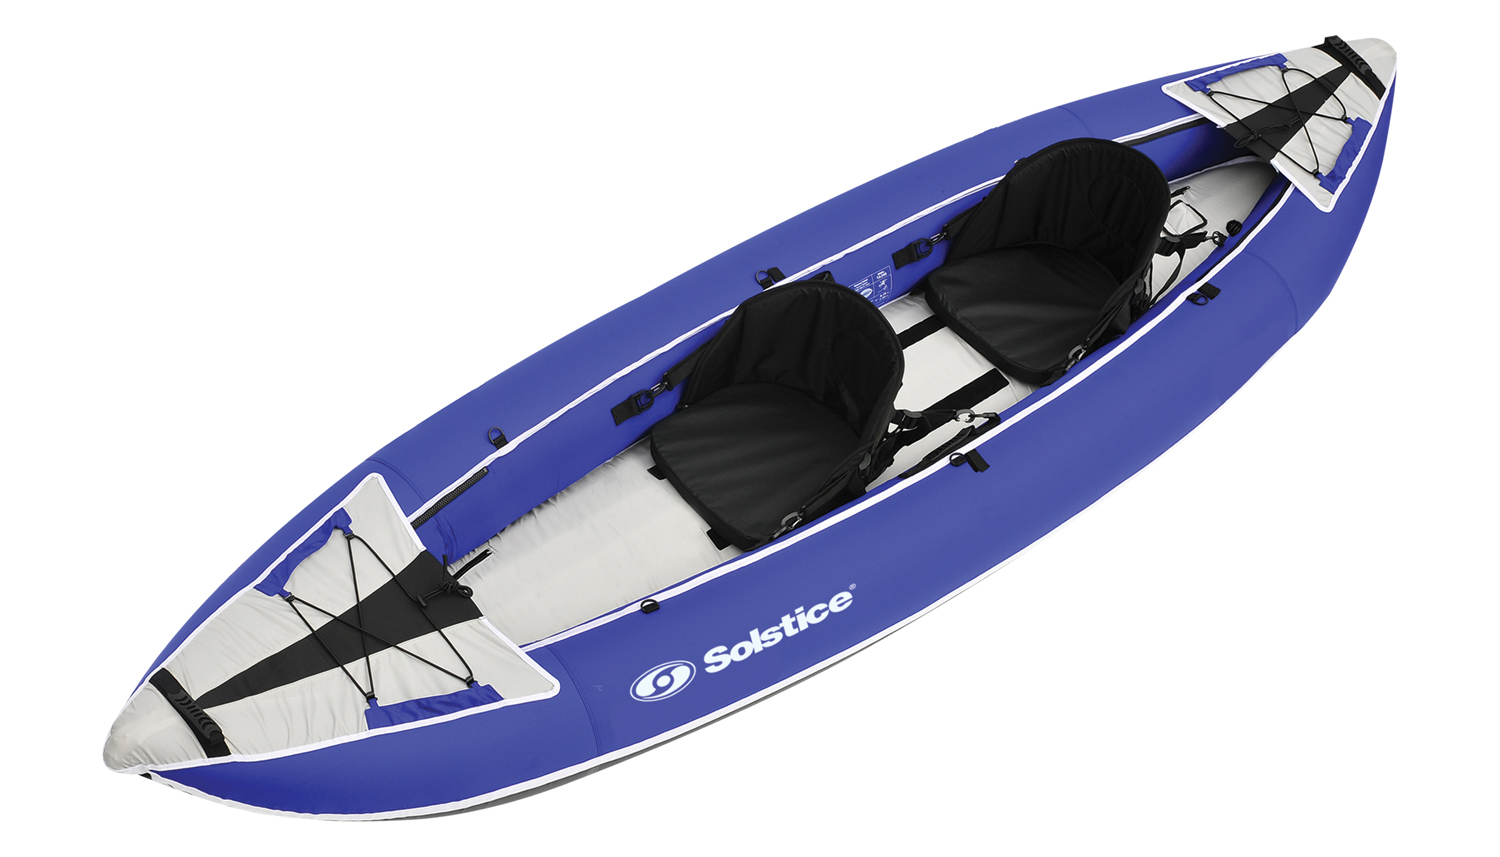 Solstice Durango Inflatable Whitewater Kayak | 29635